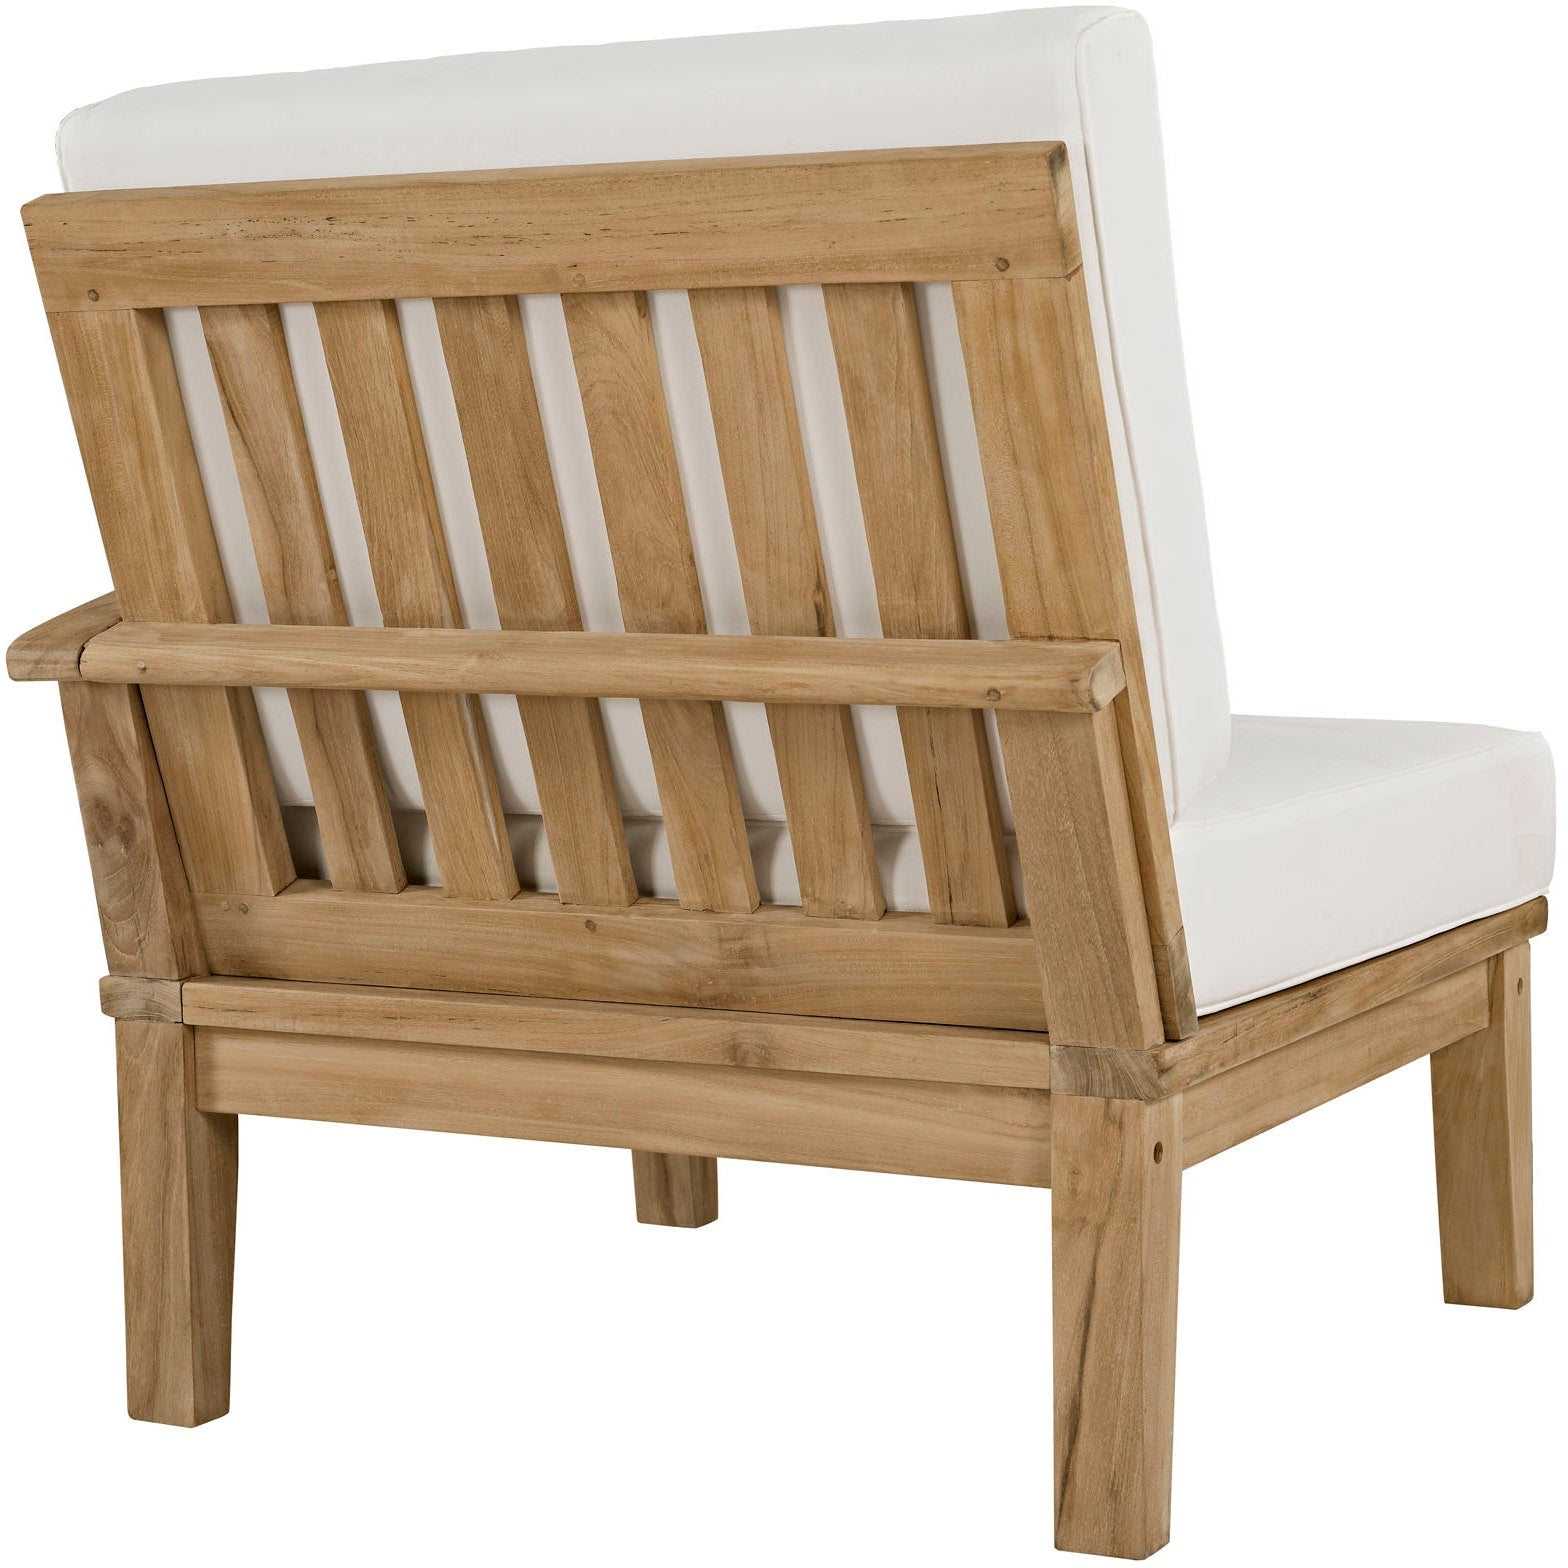 Marina 10 Piece Outdoor Patio Teak Set - Natural White